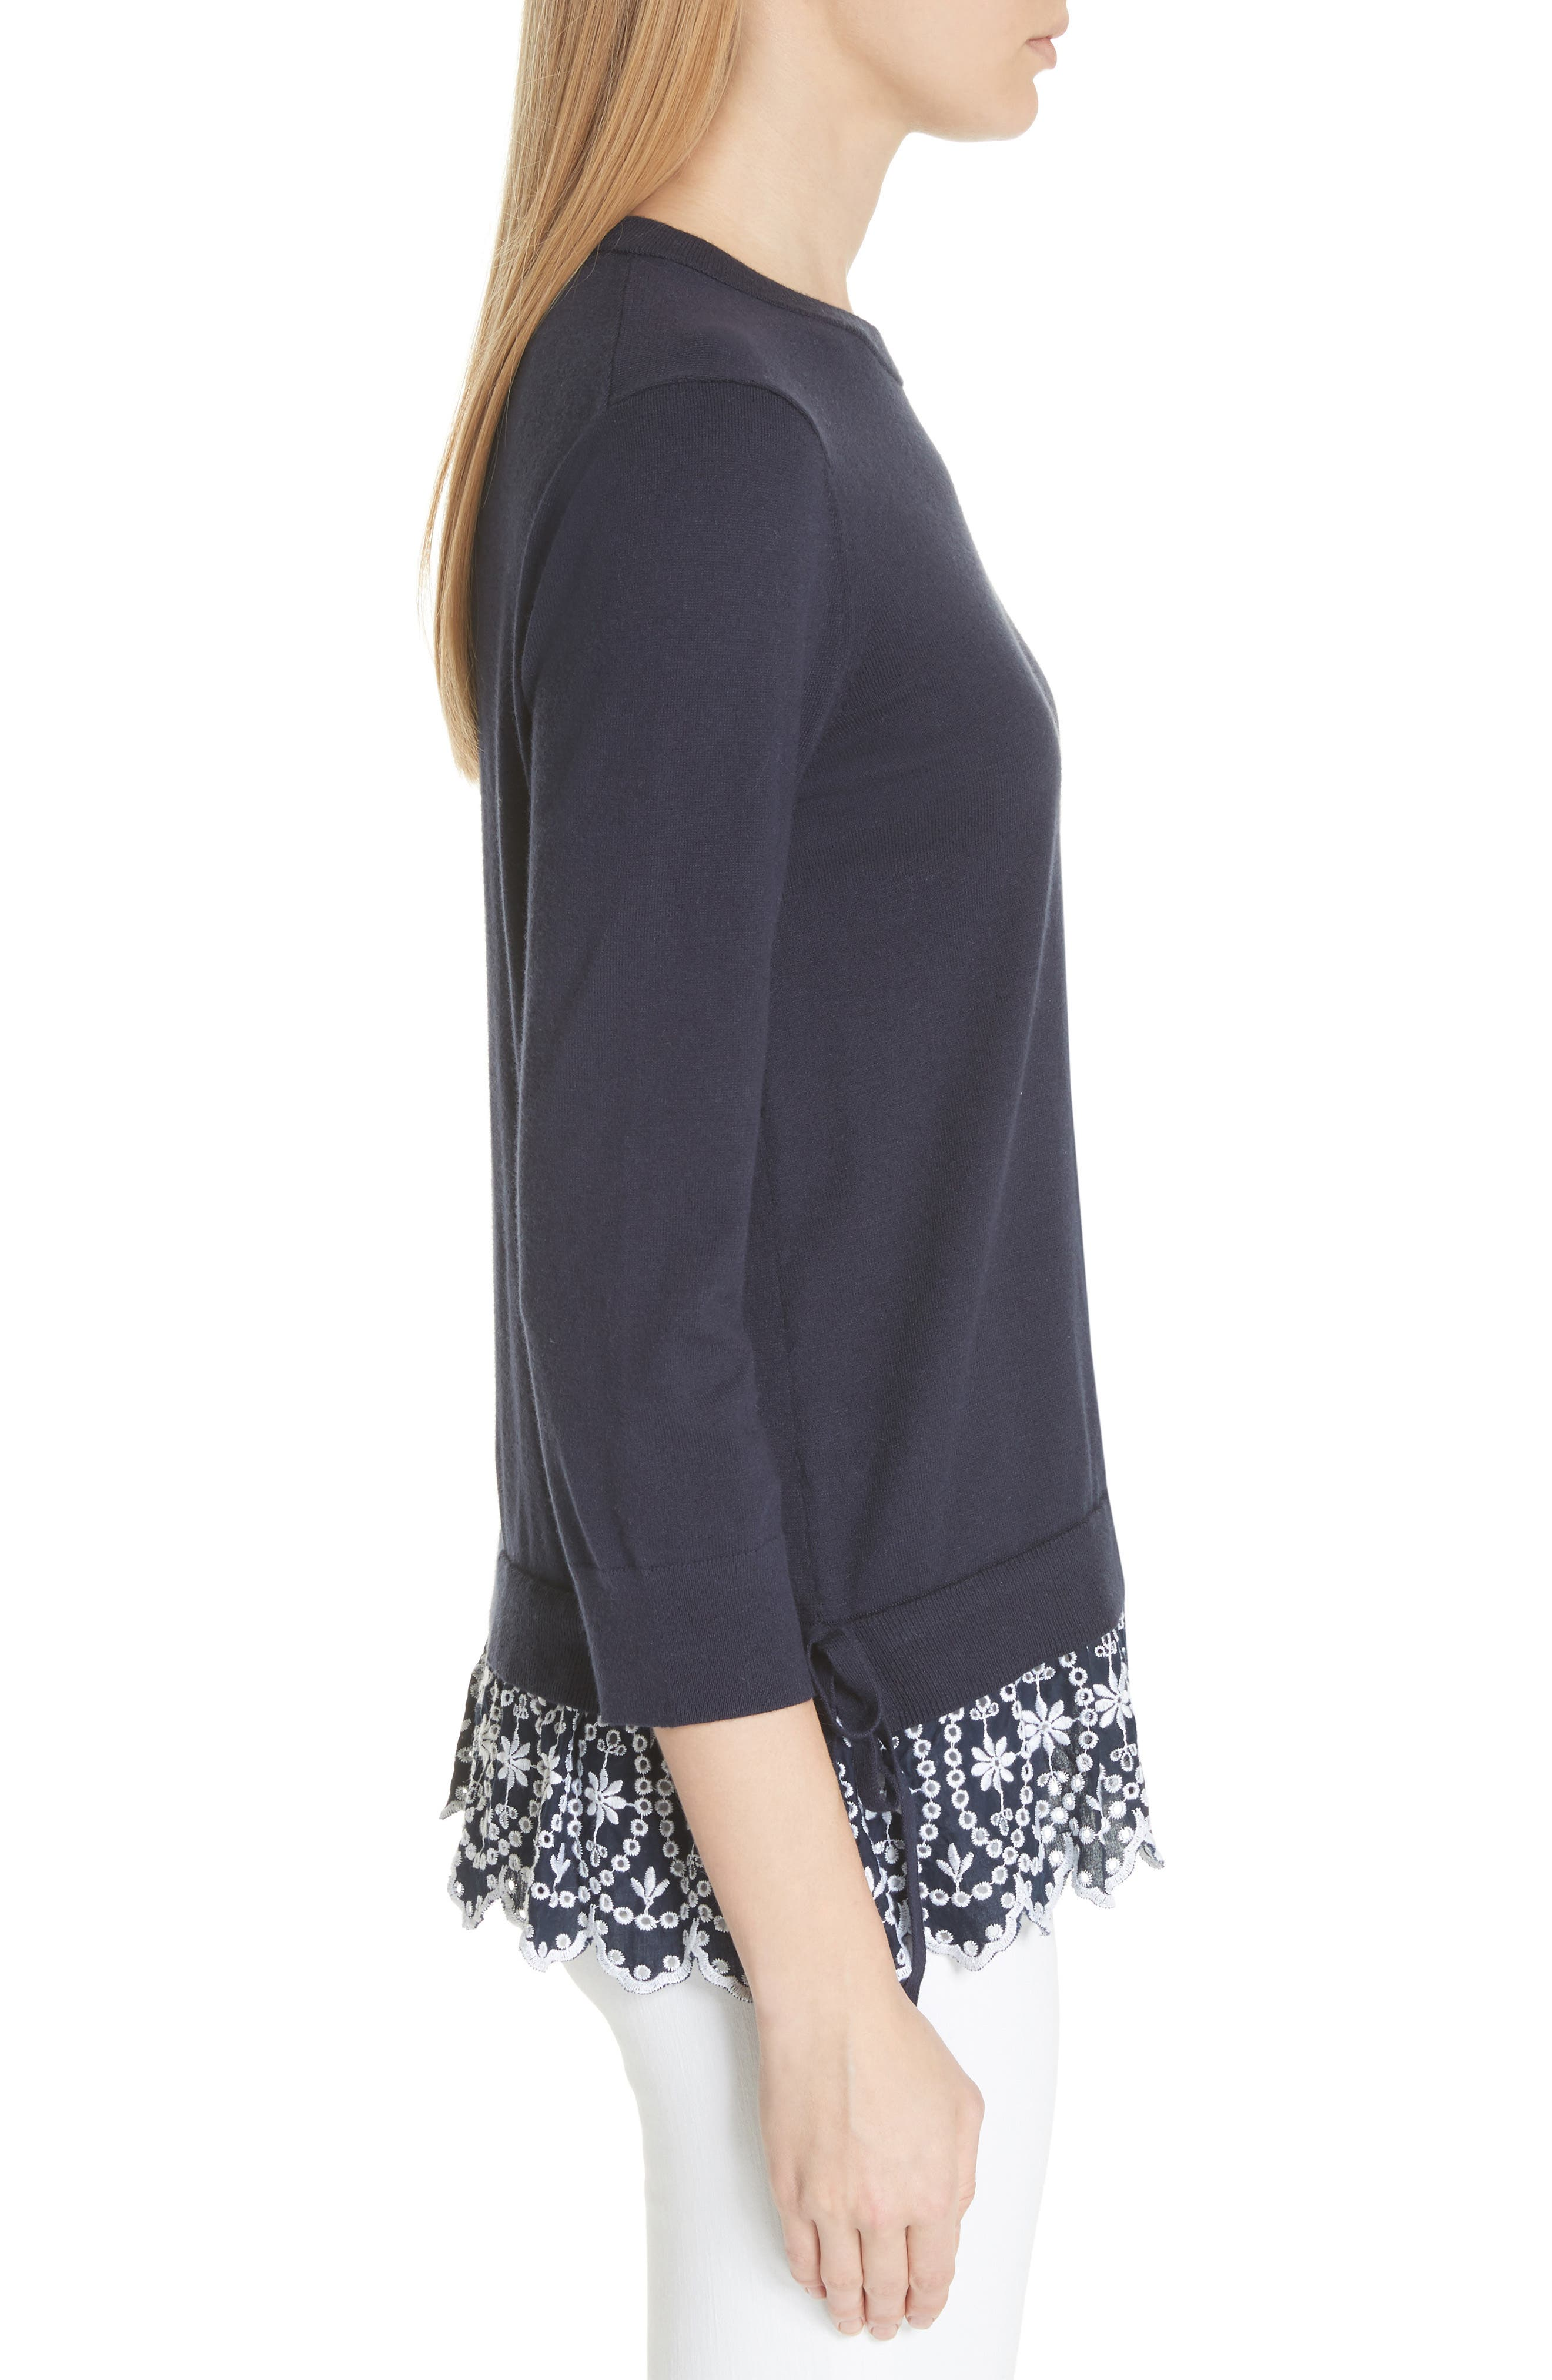 KATE SPADE NEW YORK,                             eyelet hem sweater,                             Alternate thumbnail 3, color,                             473